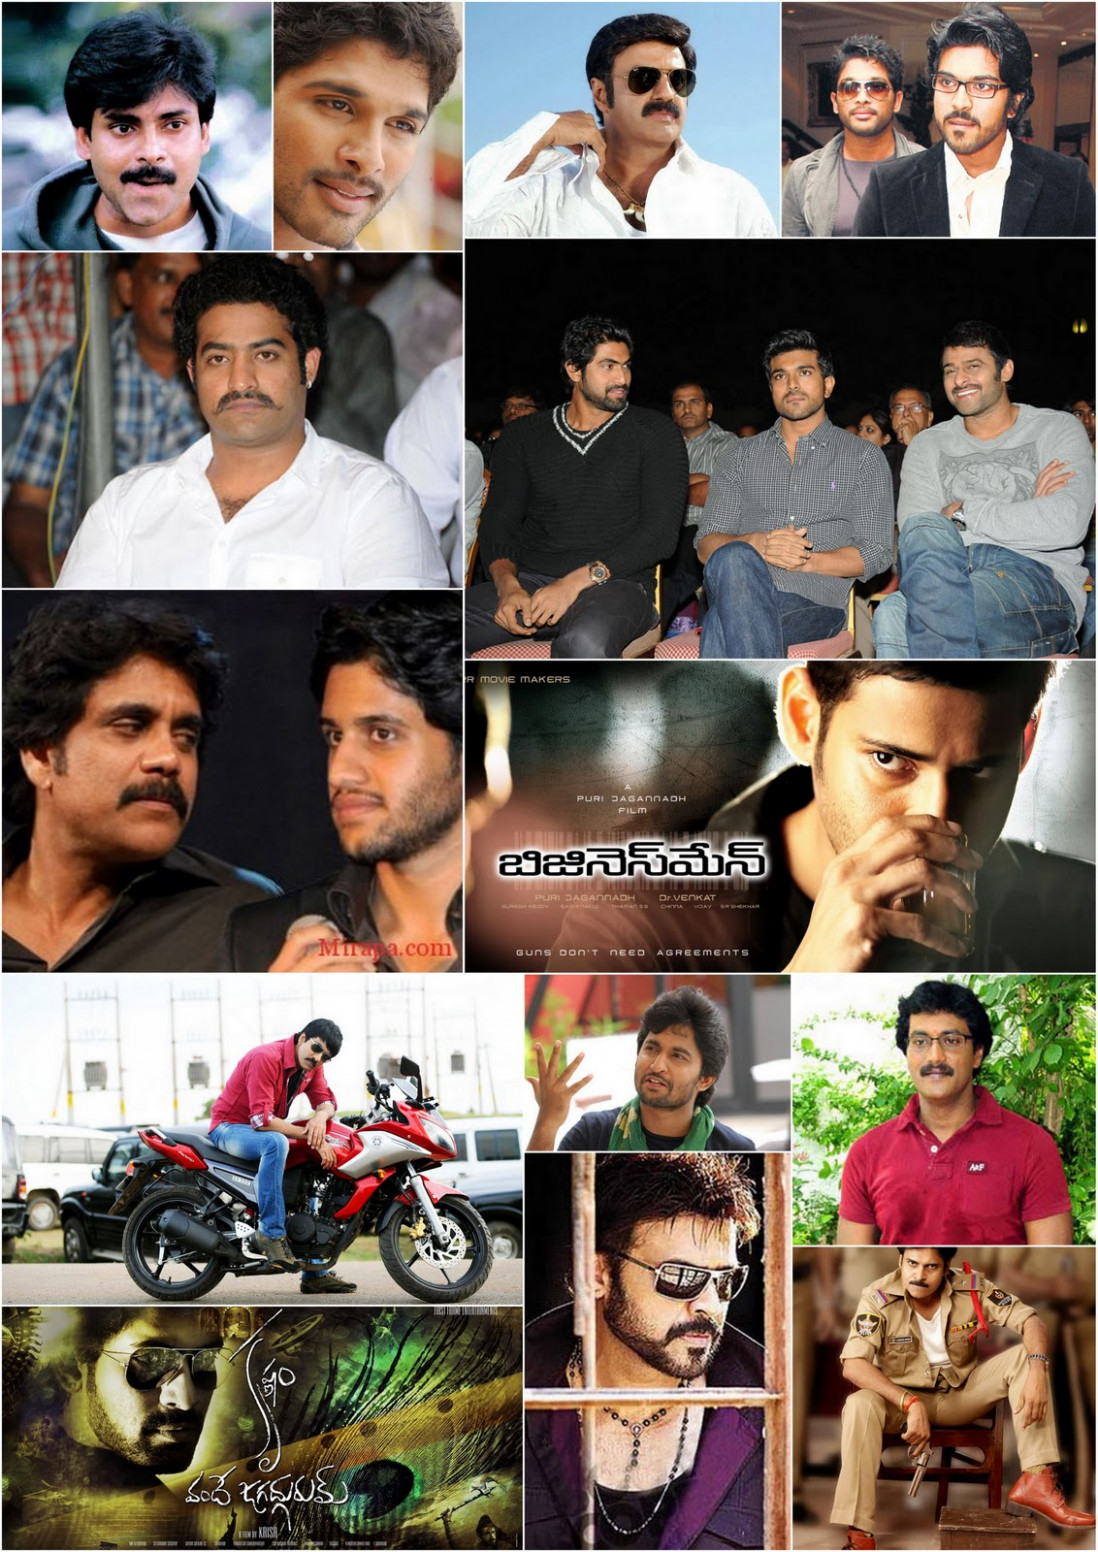 Tollywood | Chaitanya Kumar Vummethala's Blog | Page 2